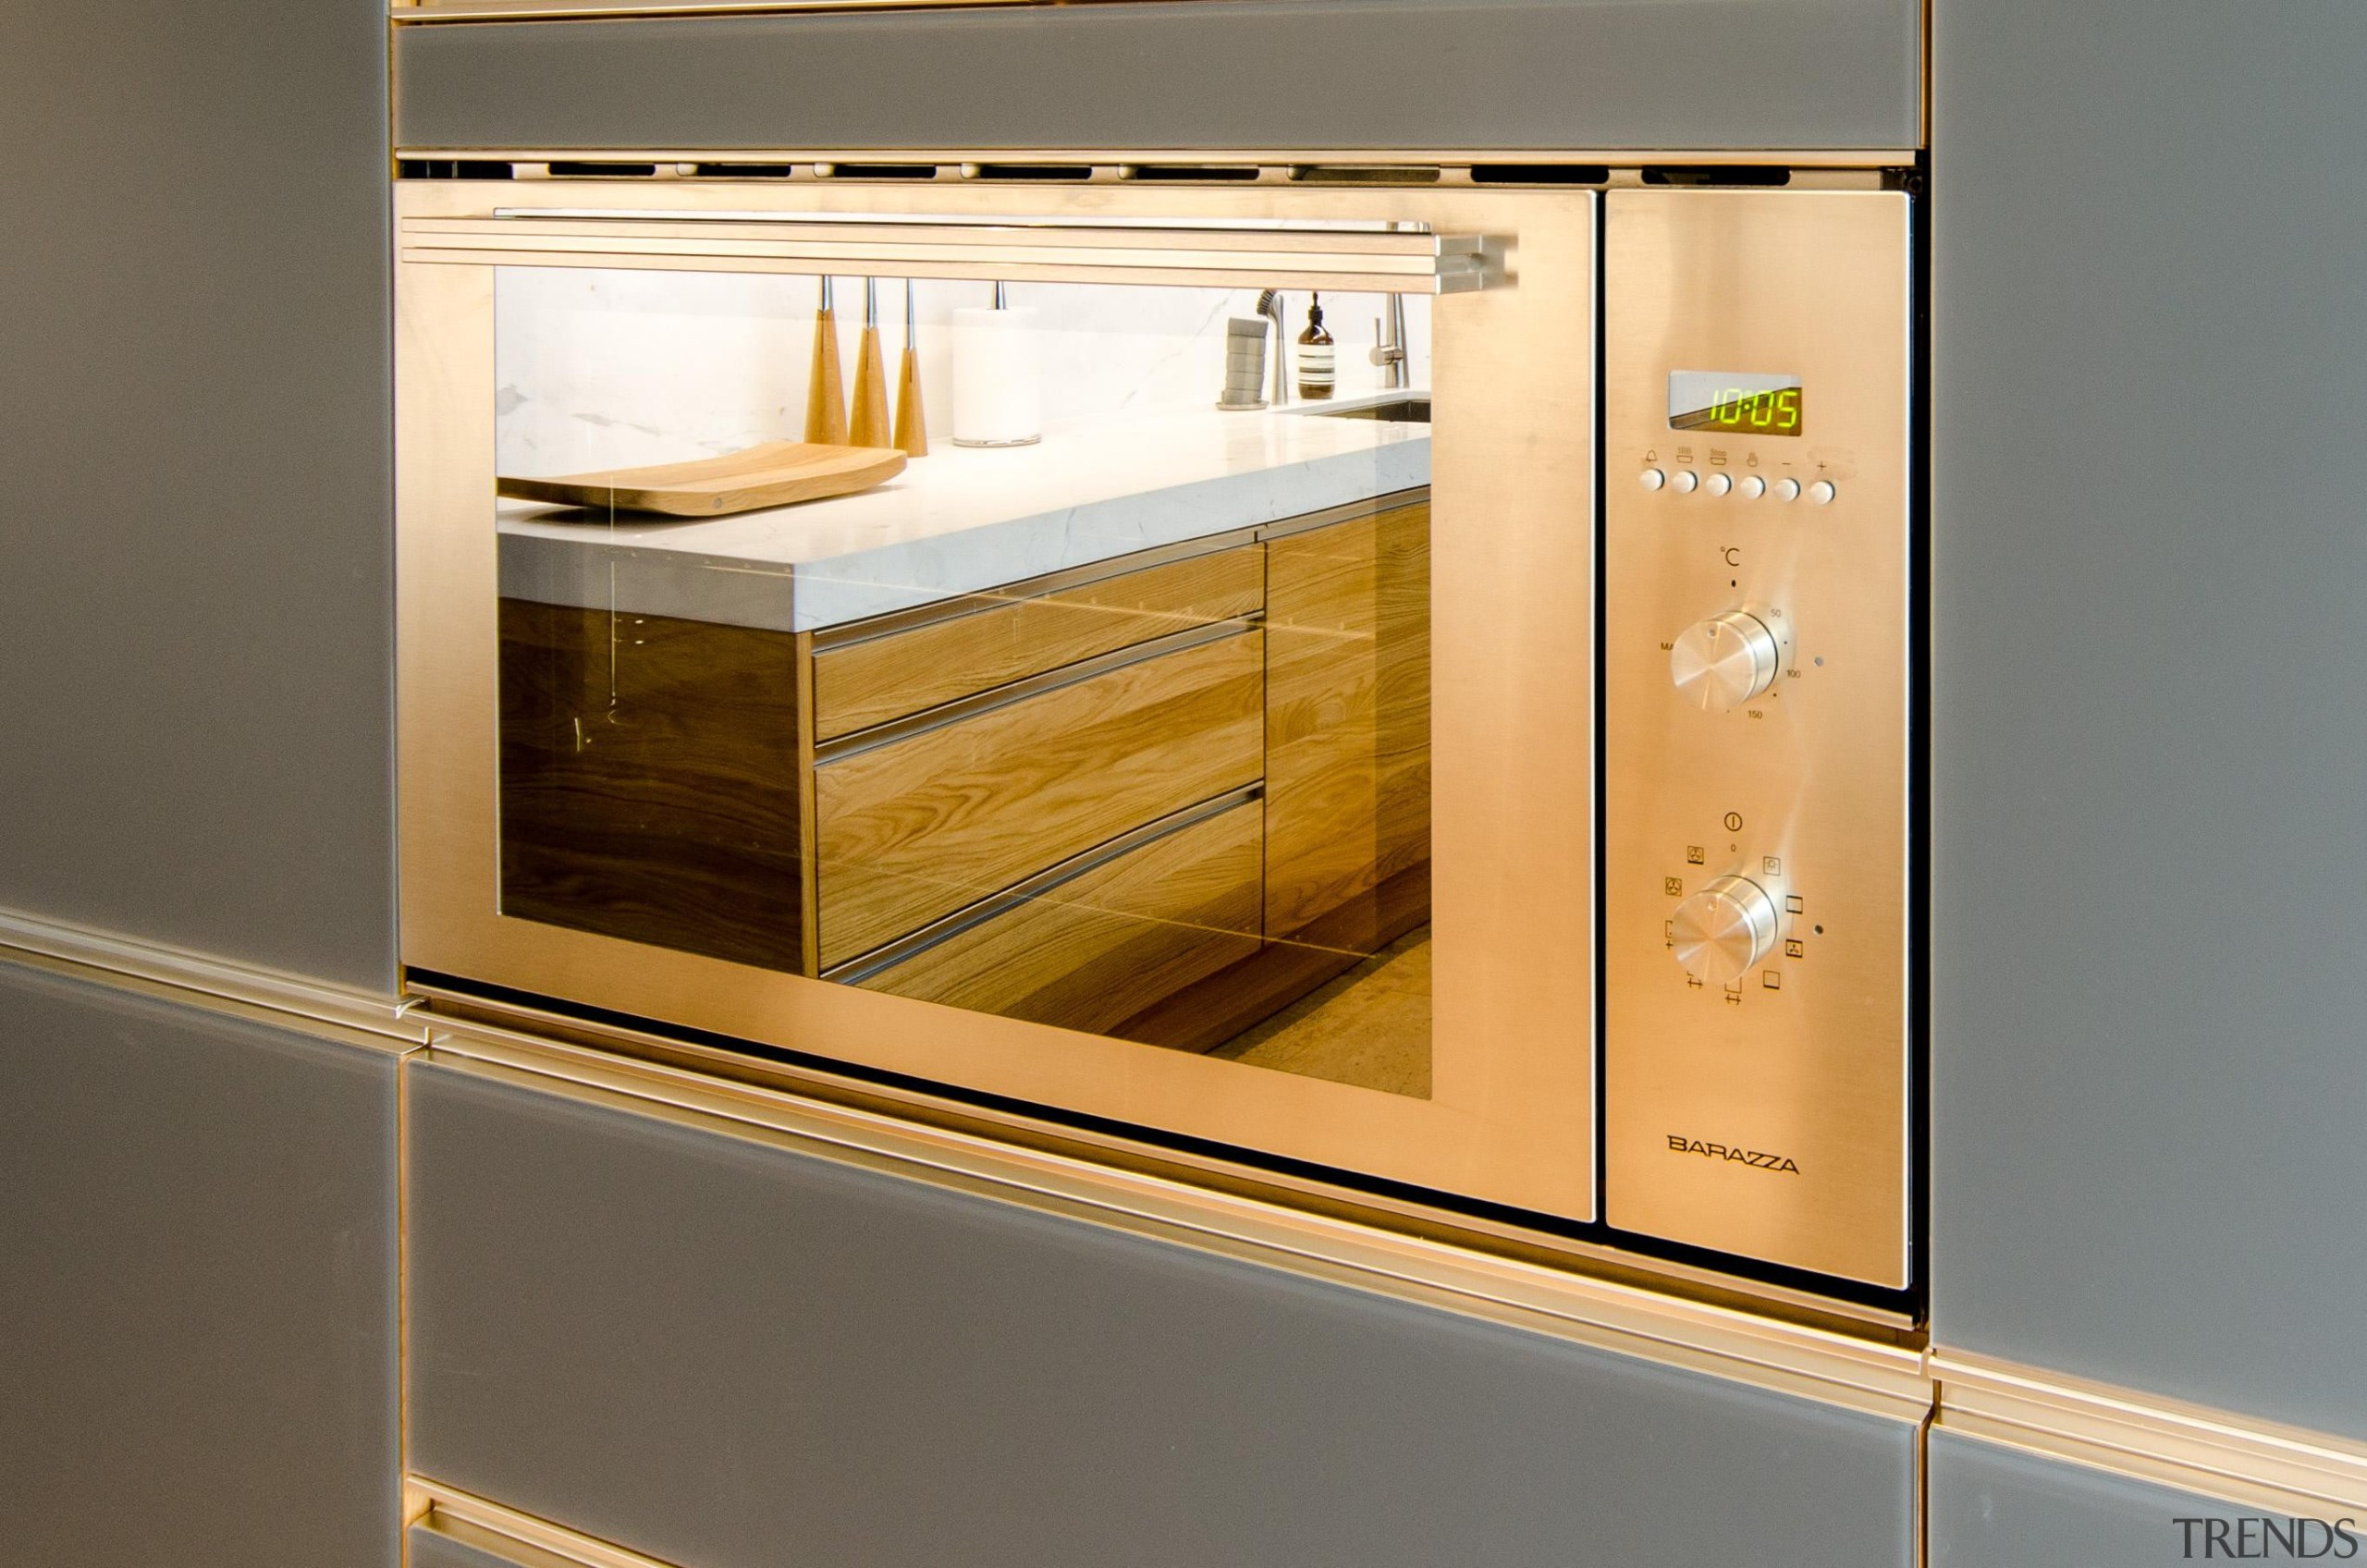 Pepper Design - Team 7 Kitchen - cabinetry cabinetry, display case, furniture, home appliance, kitchen, major appliance, product design, gray